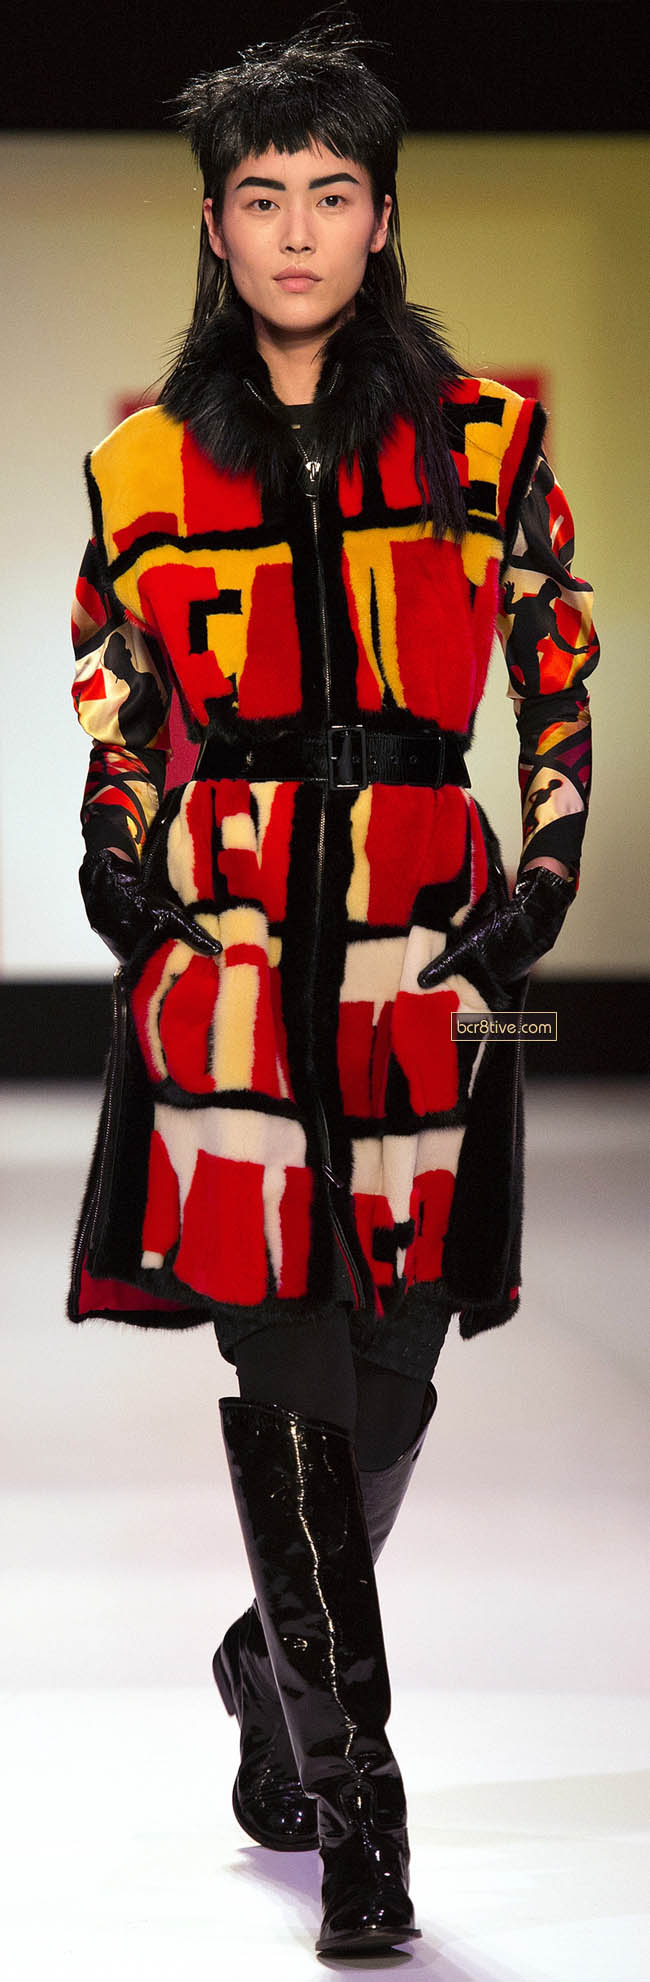 Jean Paul Gaultier 2013-14 Fall Winter Collection